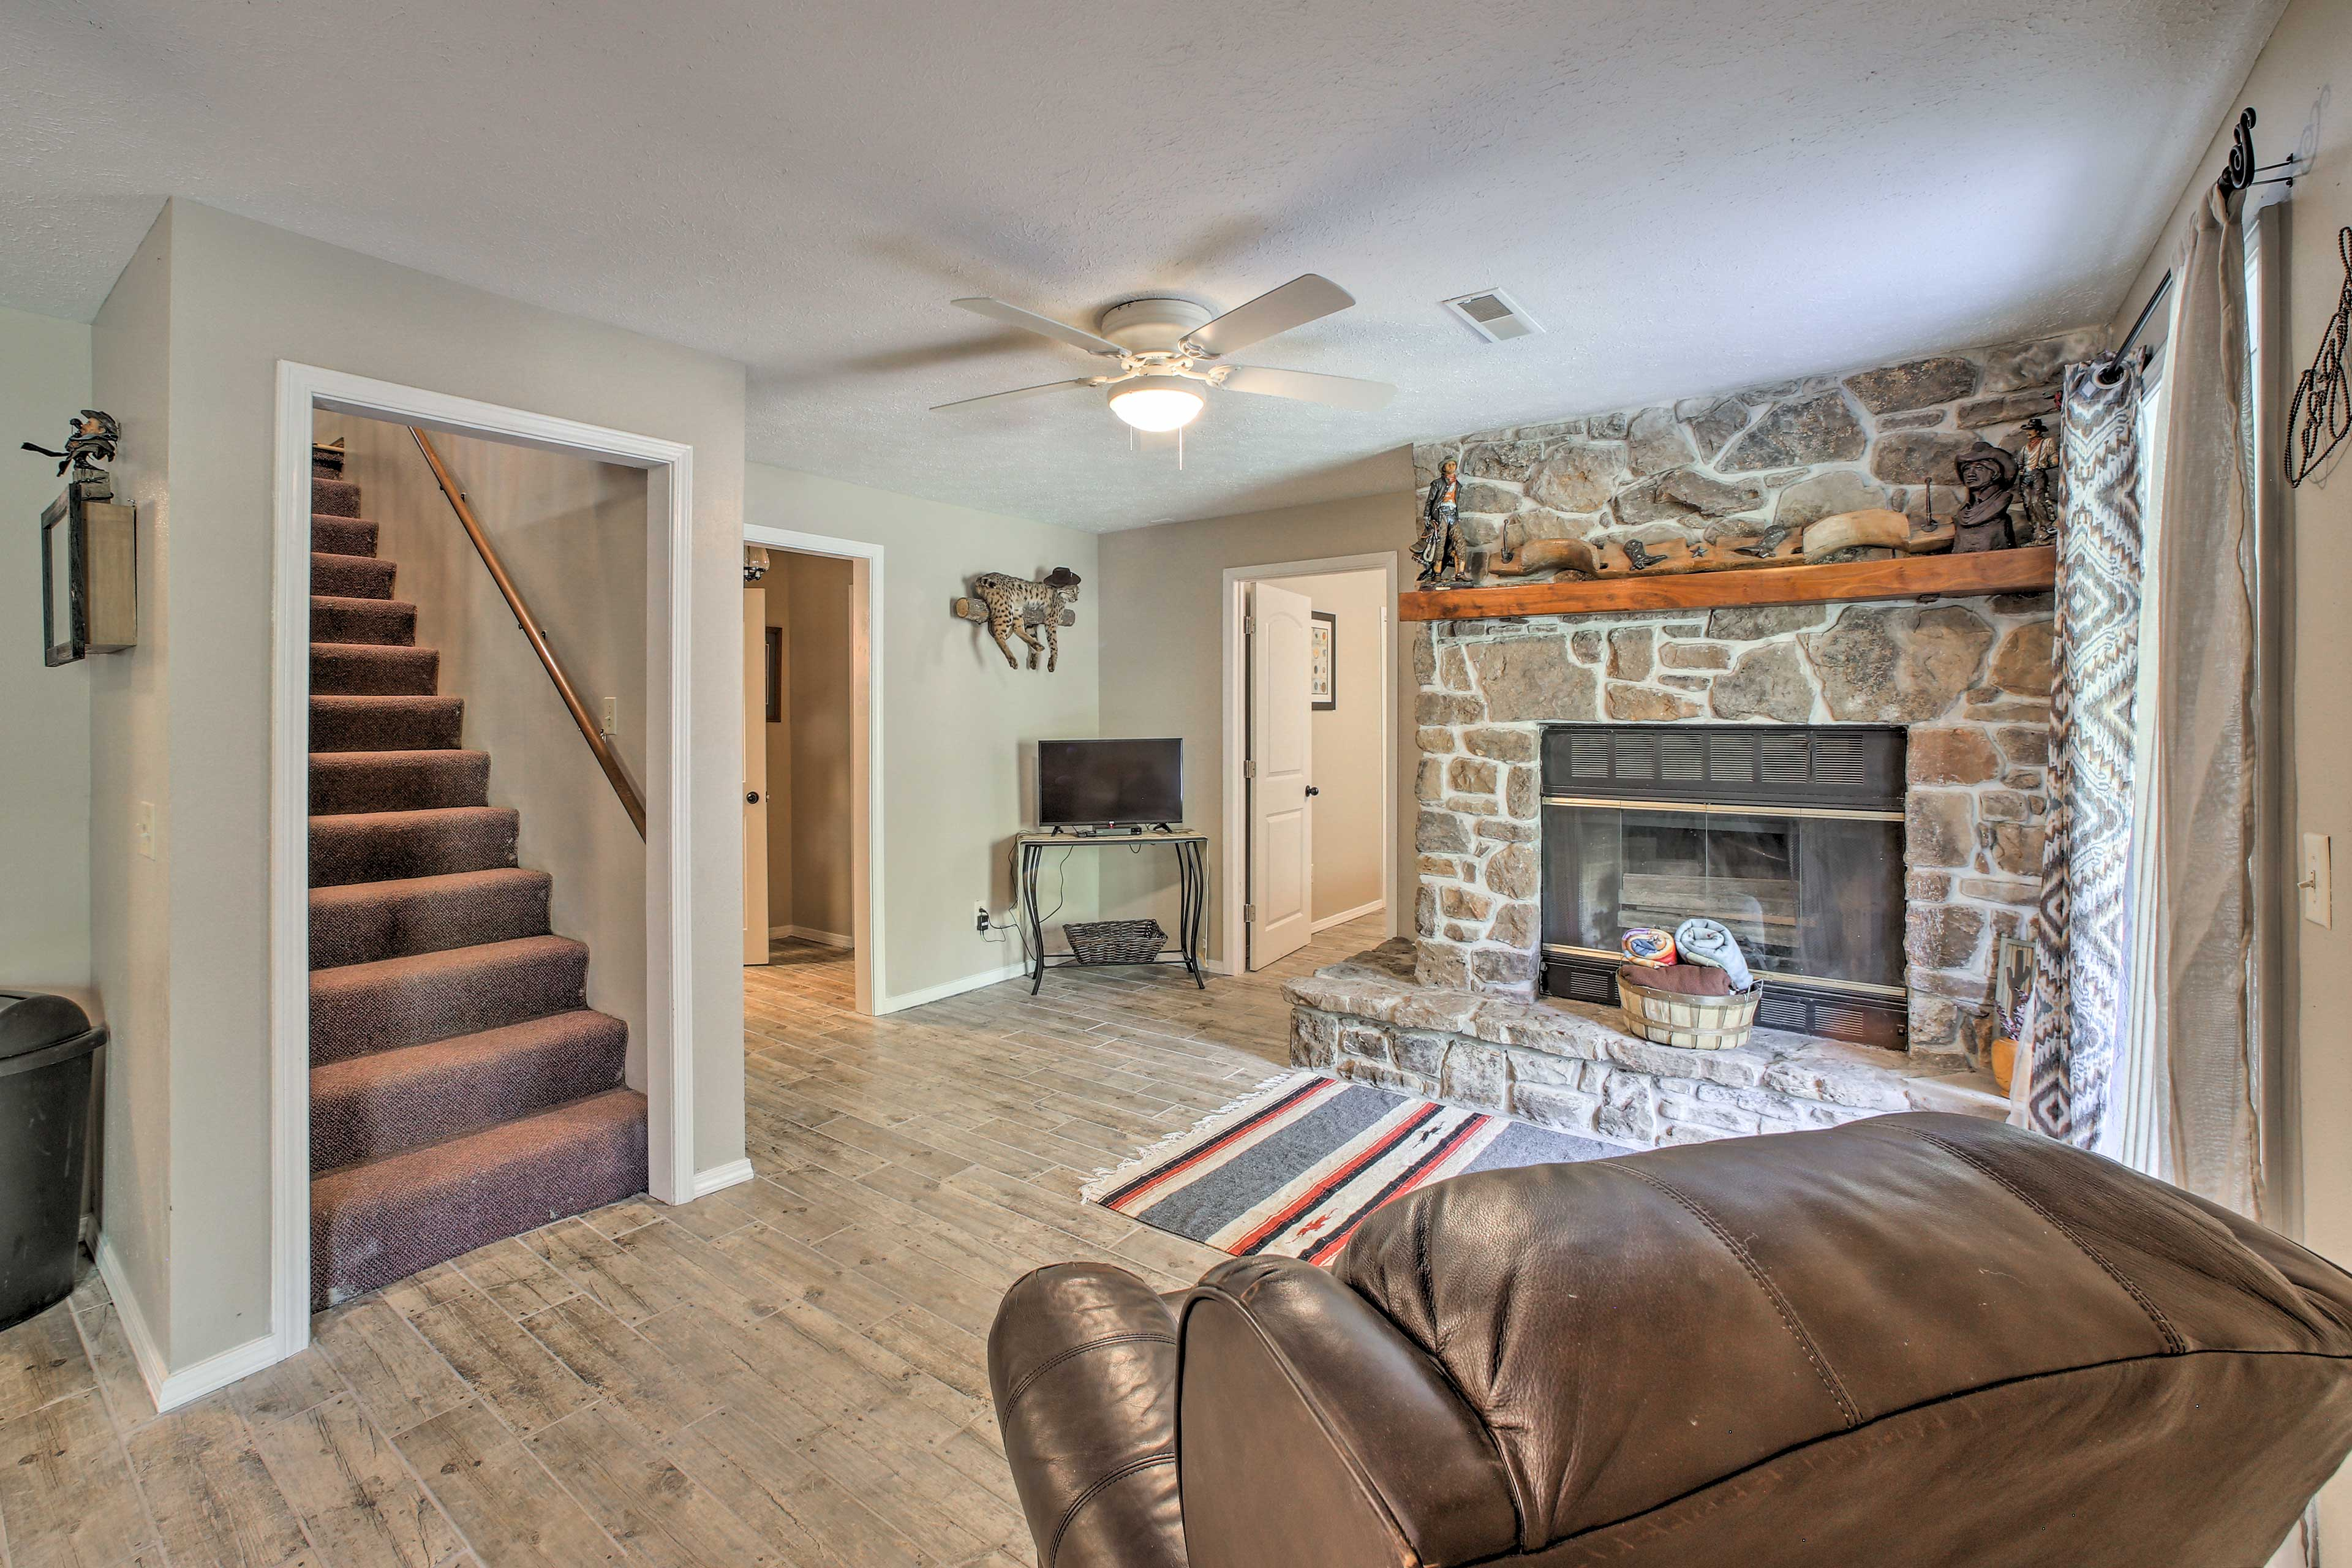 Wood will be provided for the impressive floor-to-ceiling fireplace.